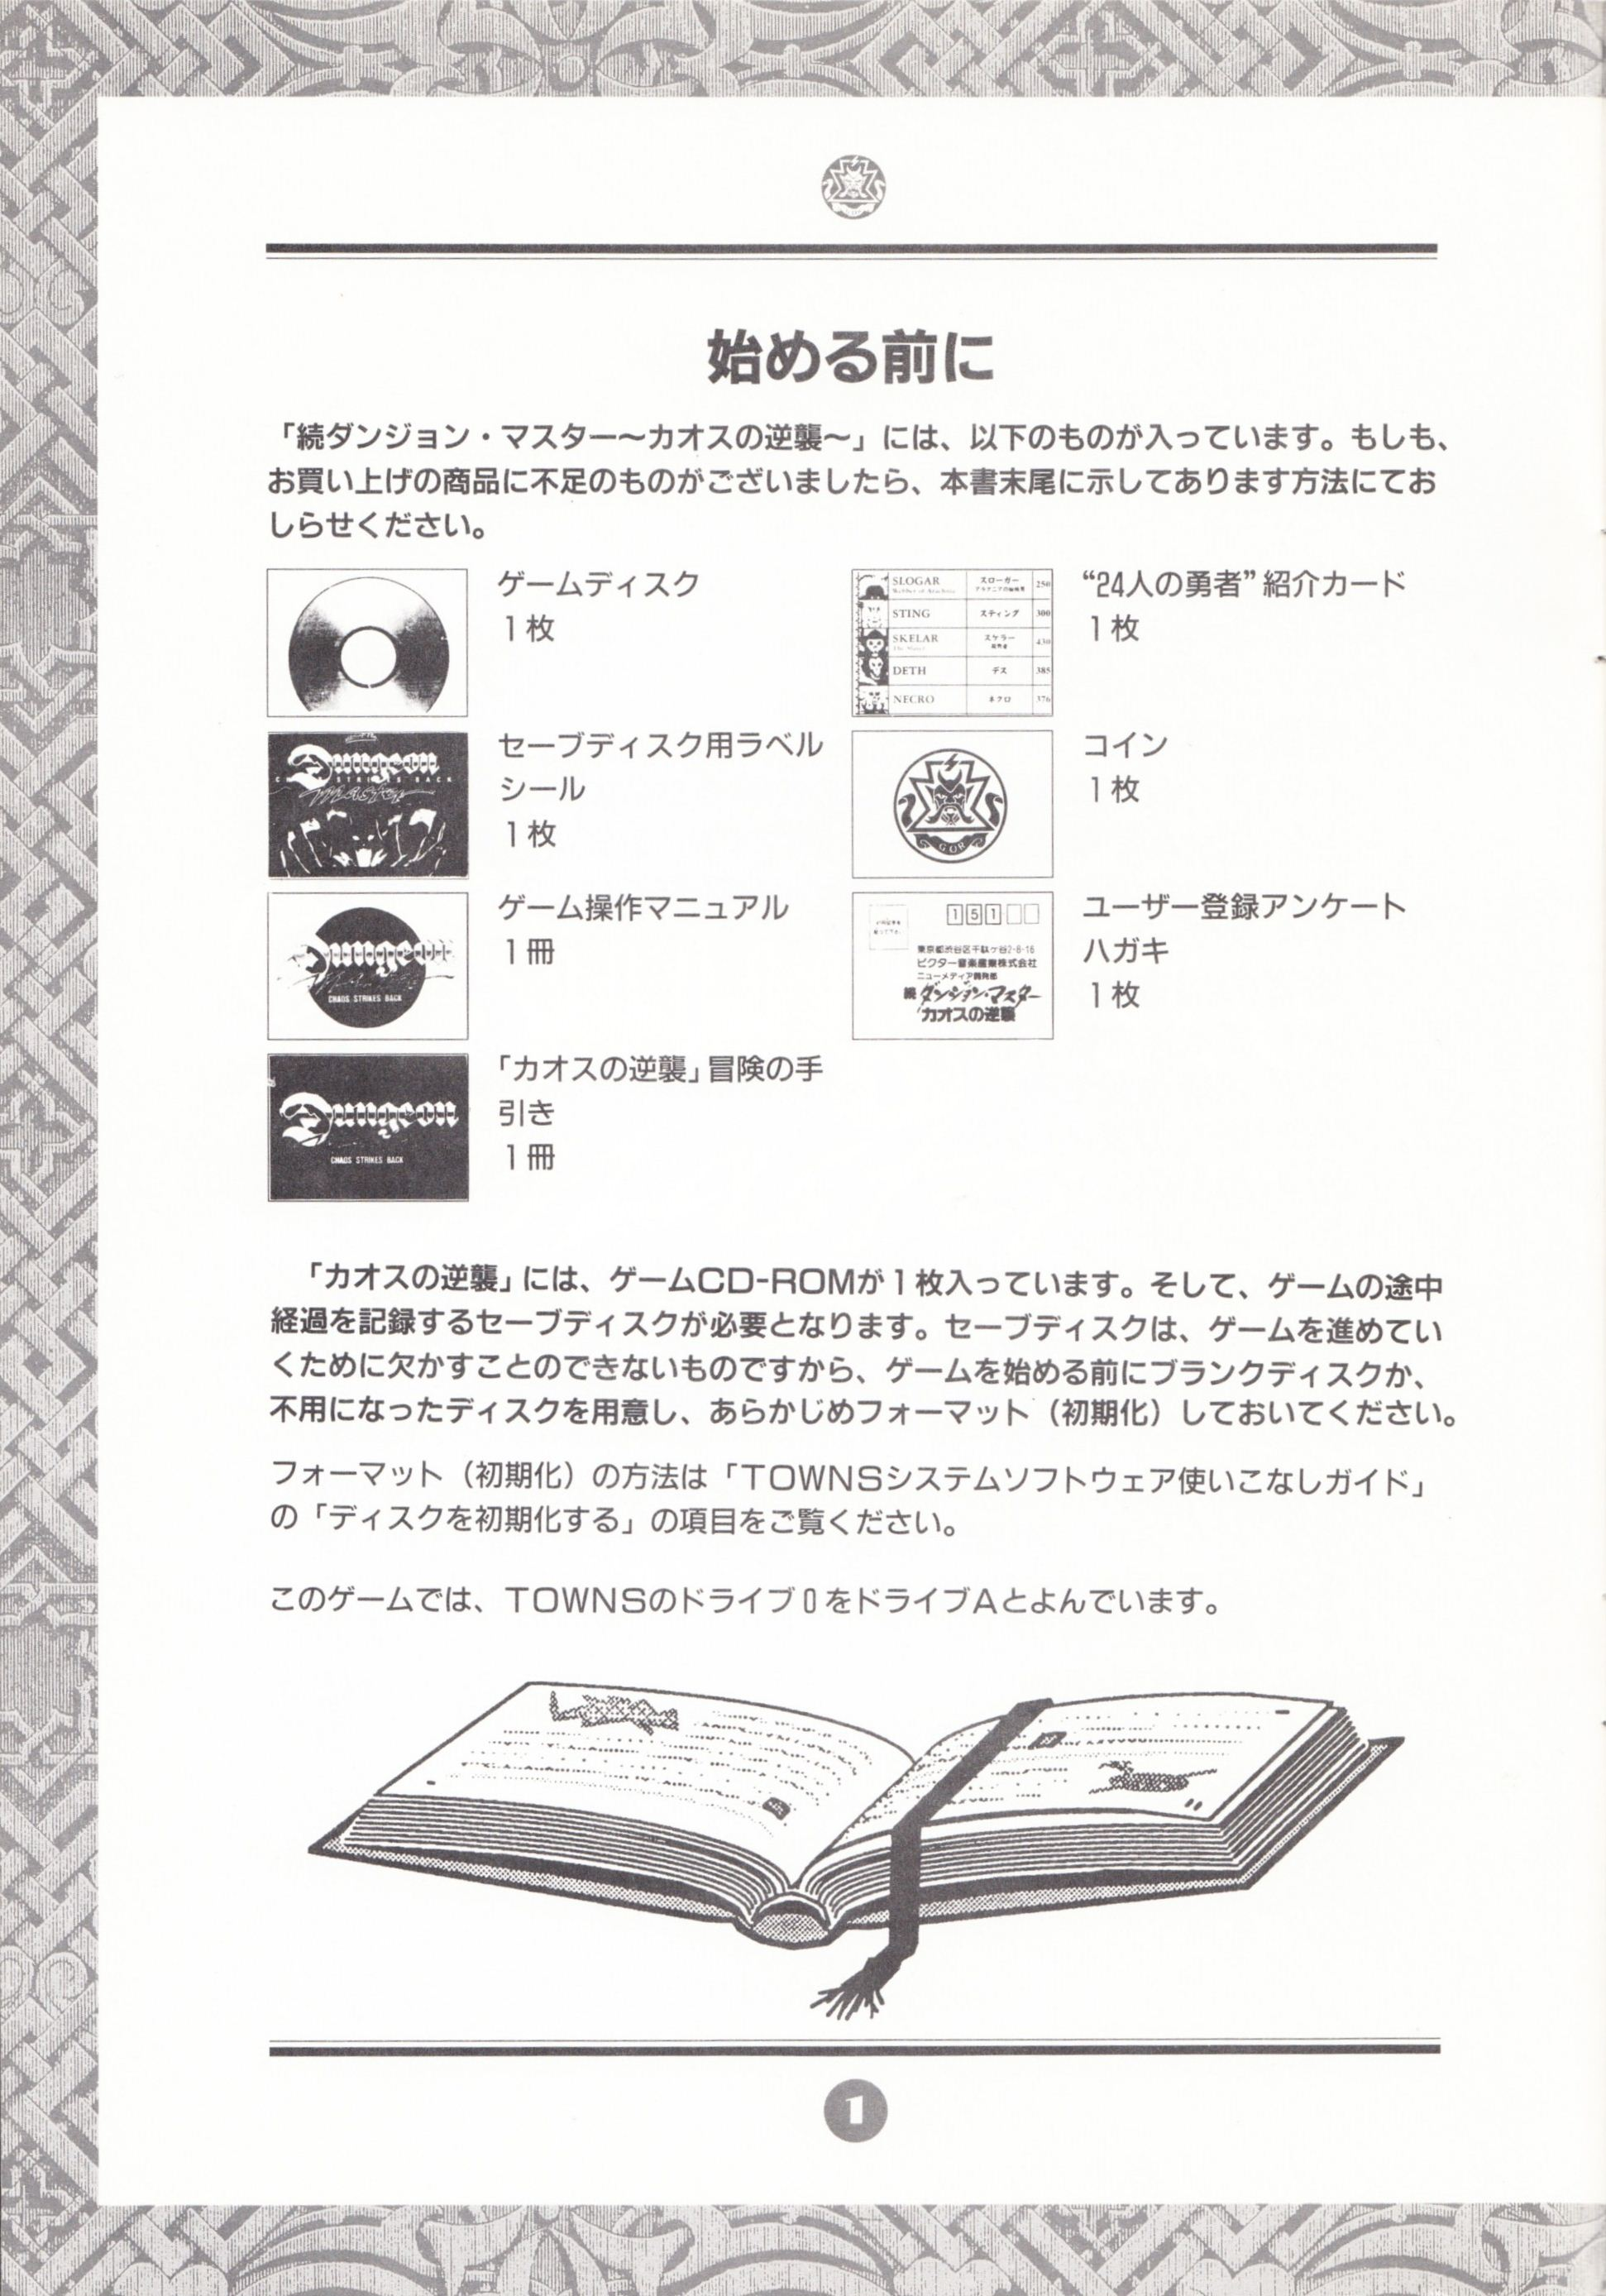 Game - Chaos Strikes Back - JP - FM Towns - An Operation Manual - Page 004 - Scan